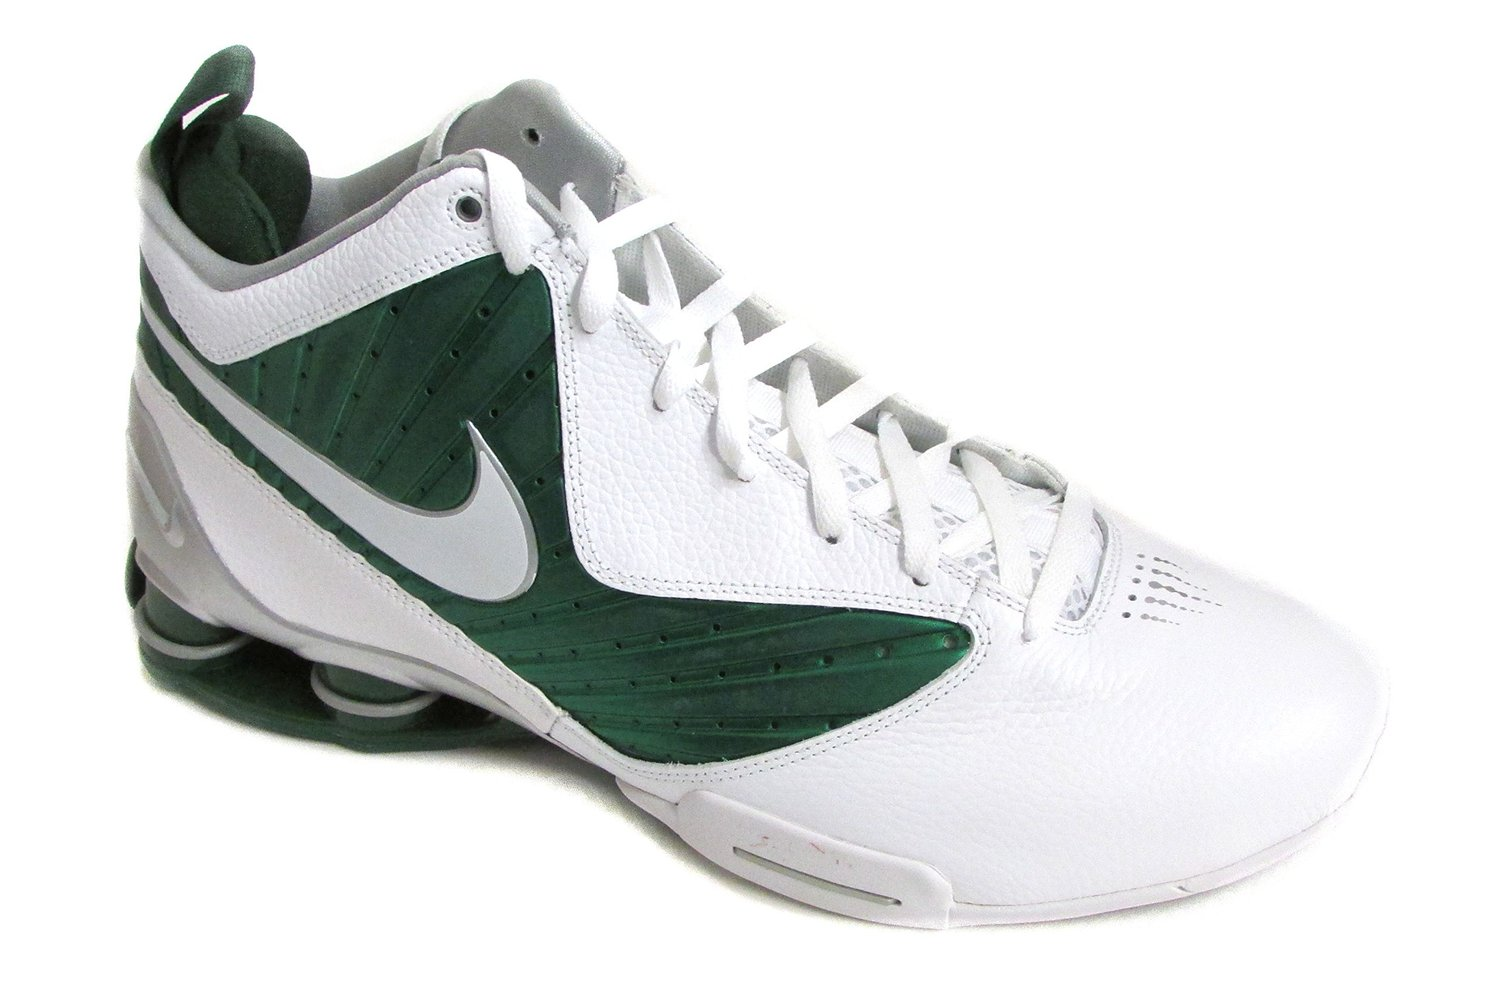 44d65fc3b2c6 Get Quotations · Nike Men s Shox BB Pro TB Basketball Shoes White Green